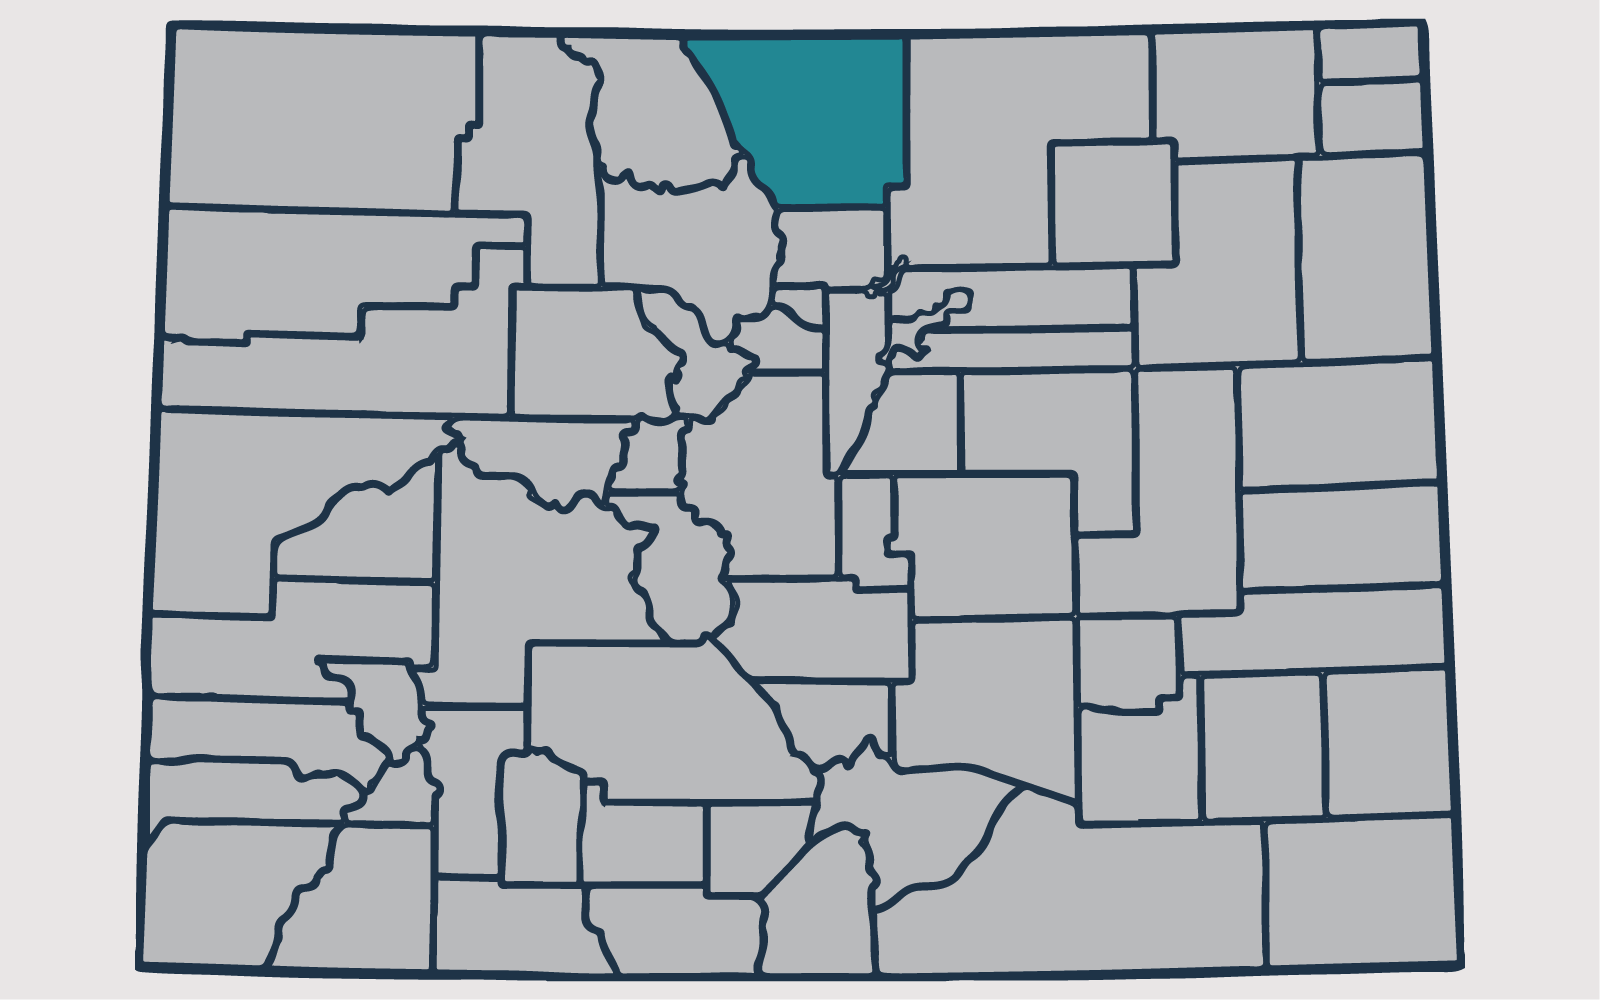 LARIMER COUNTY, Colorado - Your health and satisfaction are important to us. We are located in Littleton, Colorado and are pleased to provide our professional, honest, and affordable radon testing and mitigation services to happy and satisfied customers all along the front range of our beautiful State of Colorado.